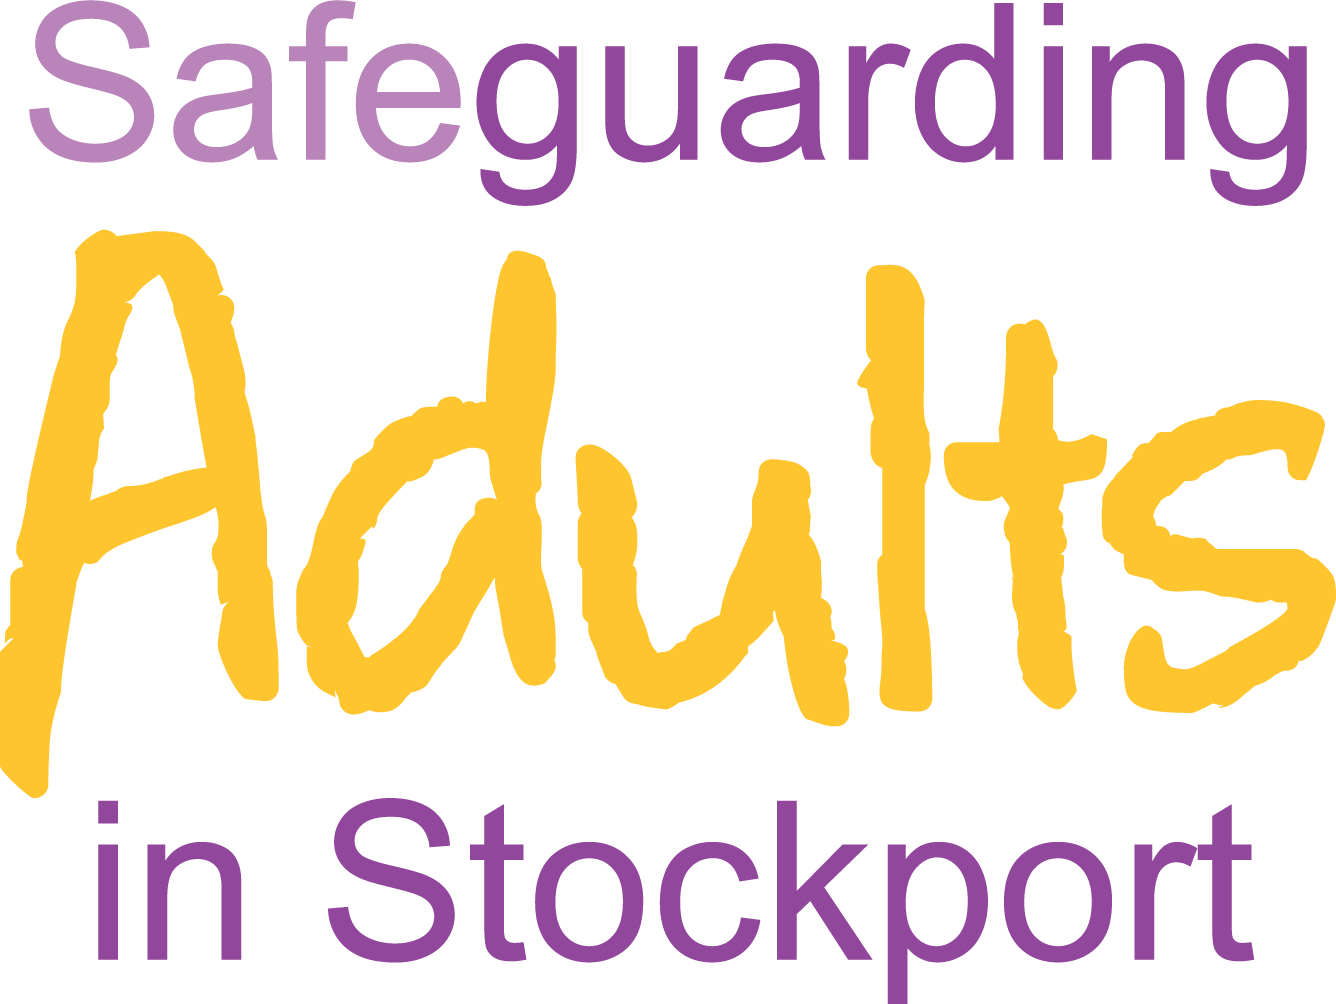 Safeguarding Adults in Stockport